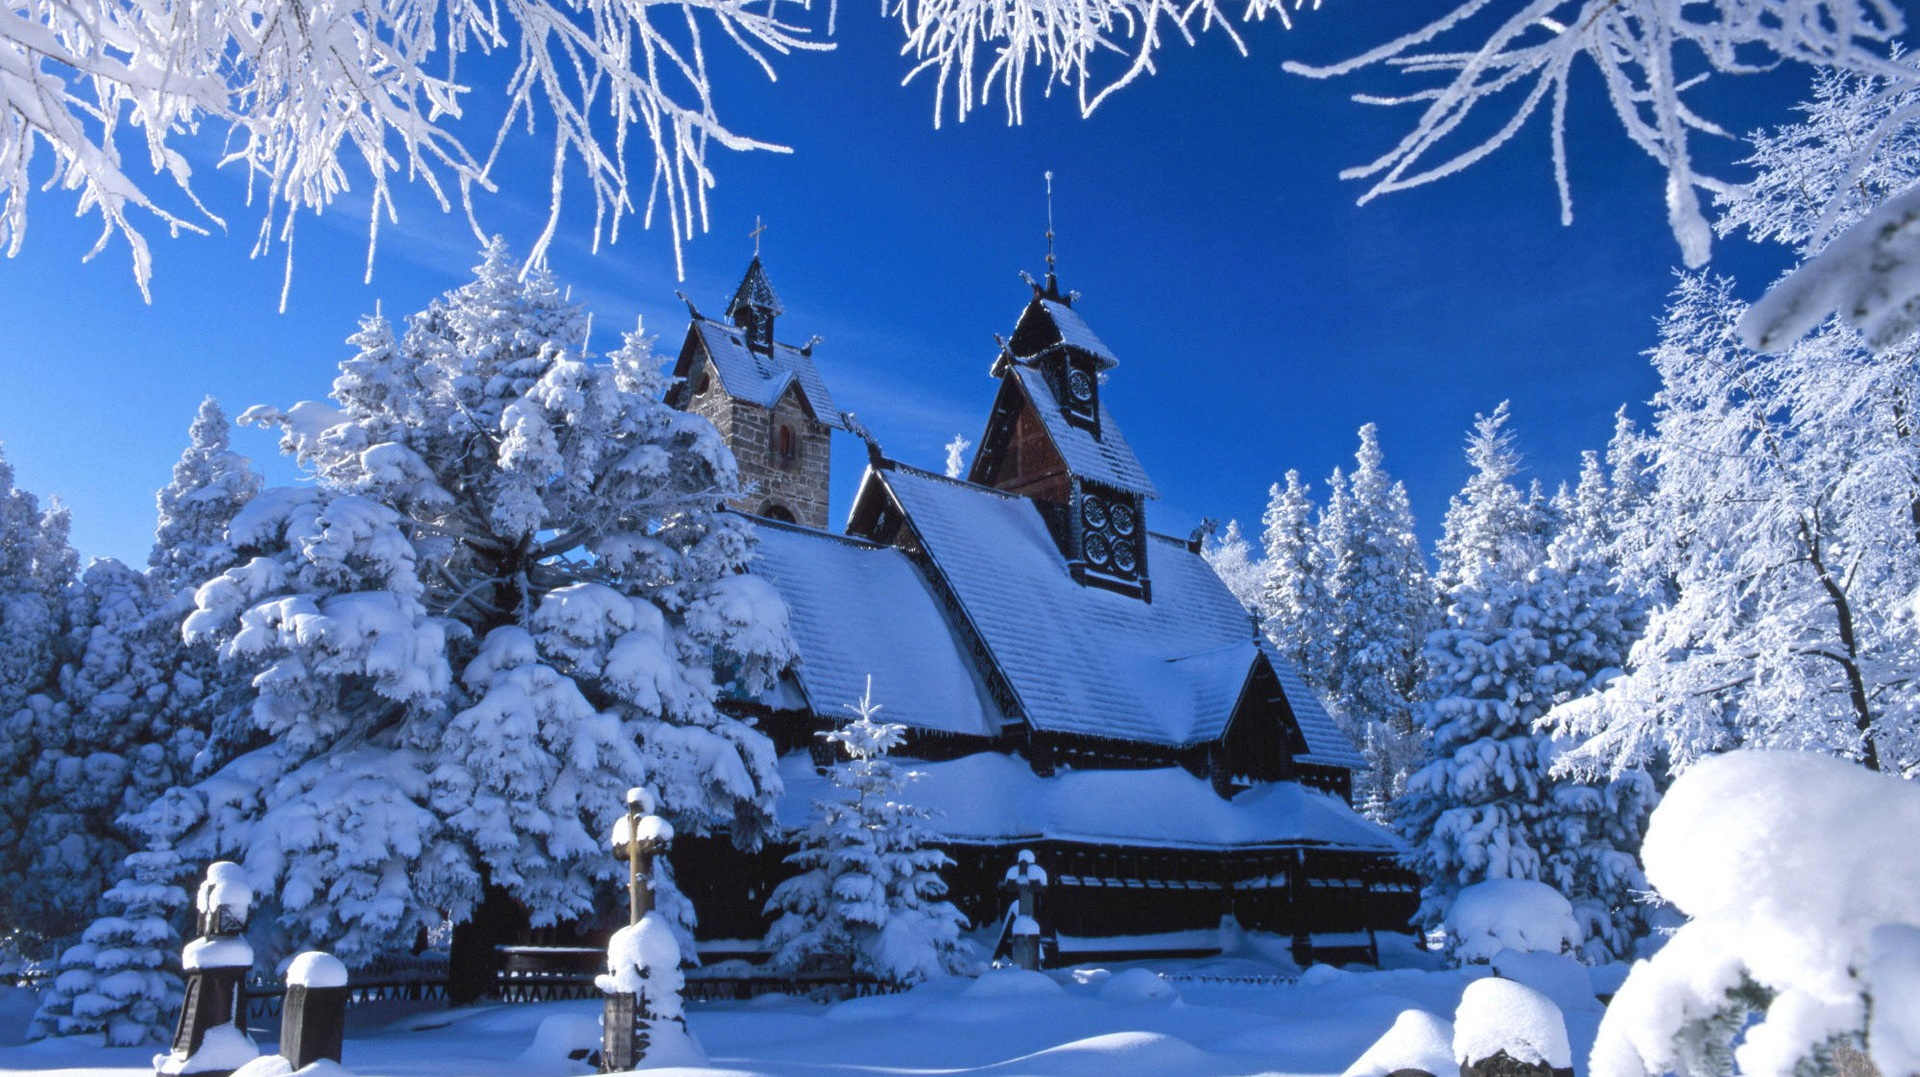 Download Winter Snow Animated Wallpaper 1920x1077